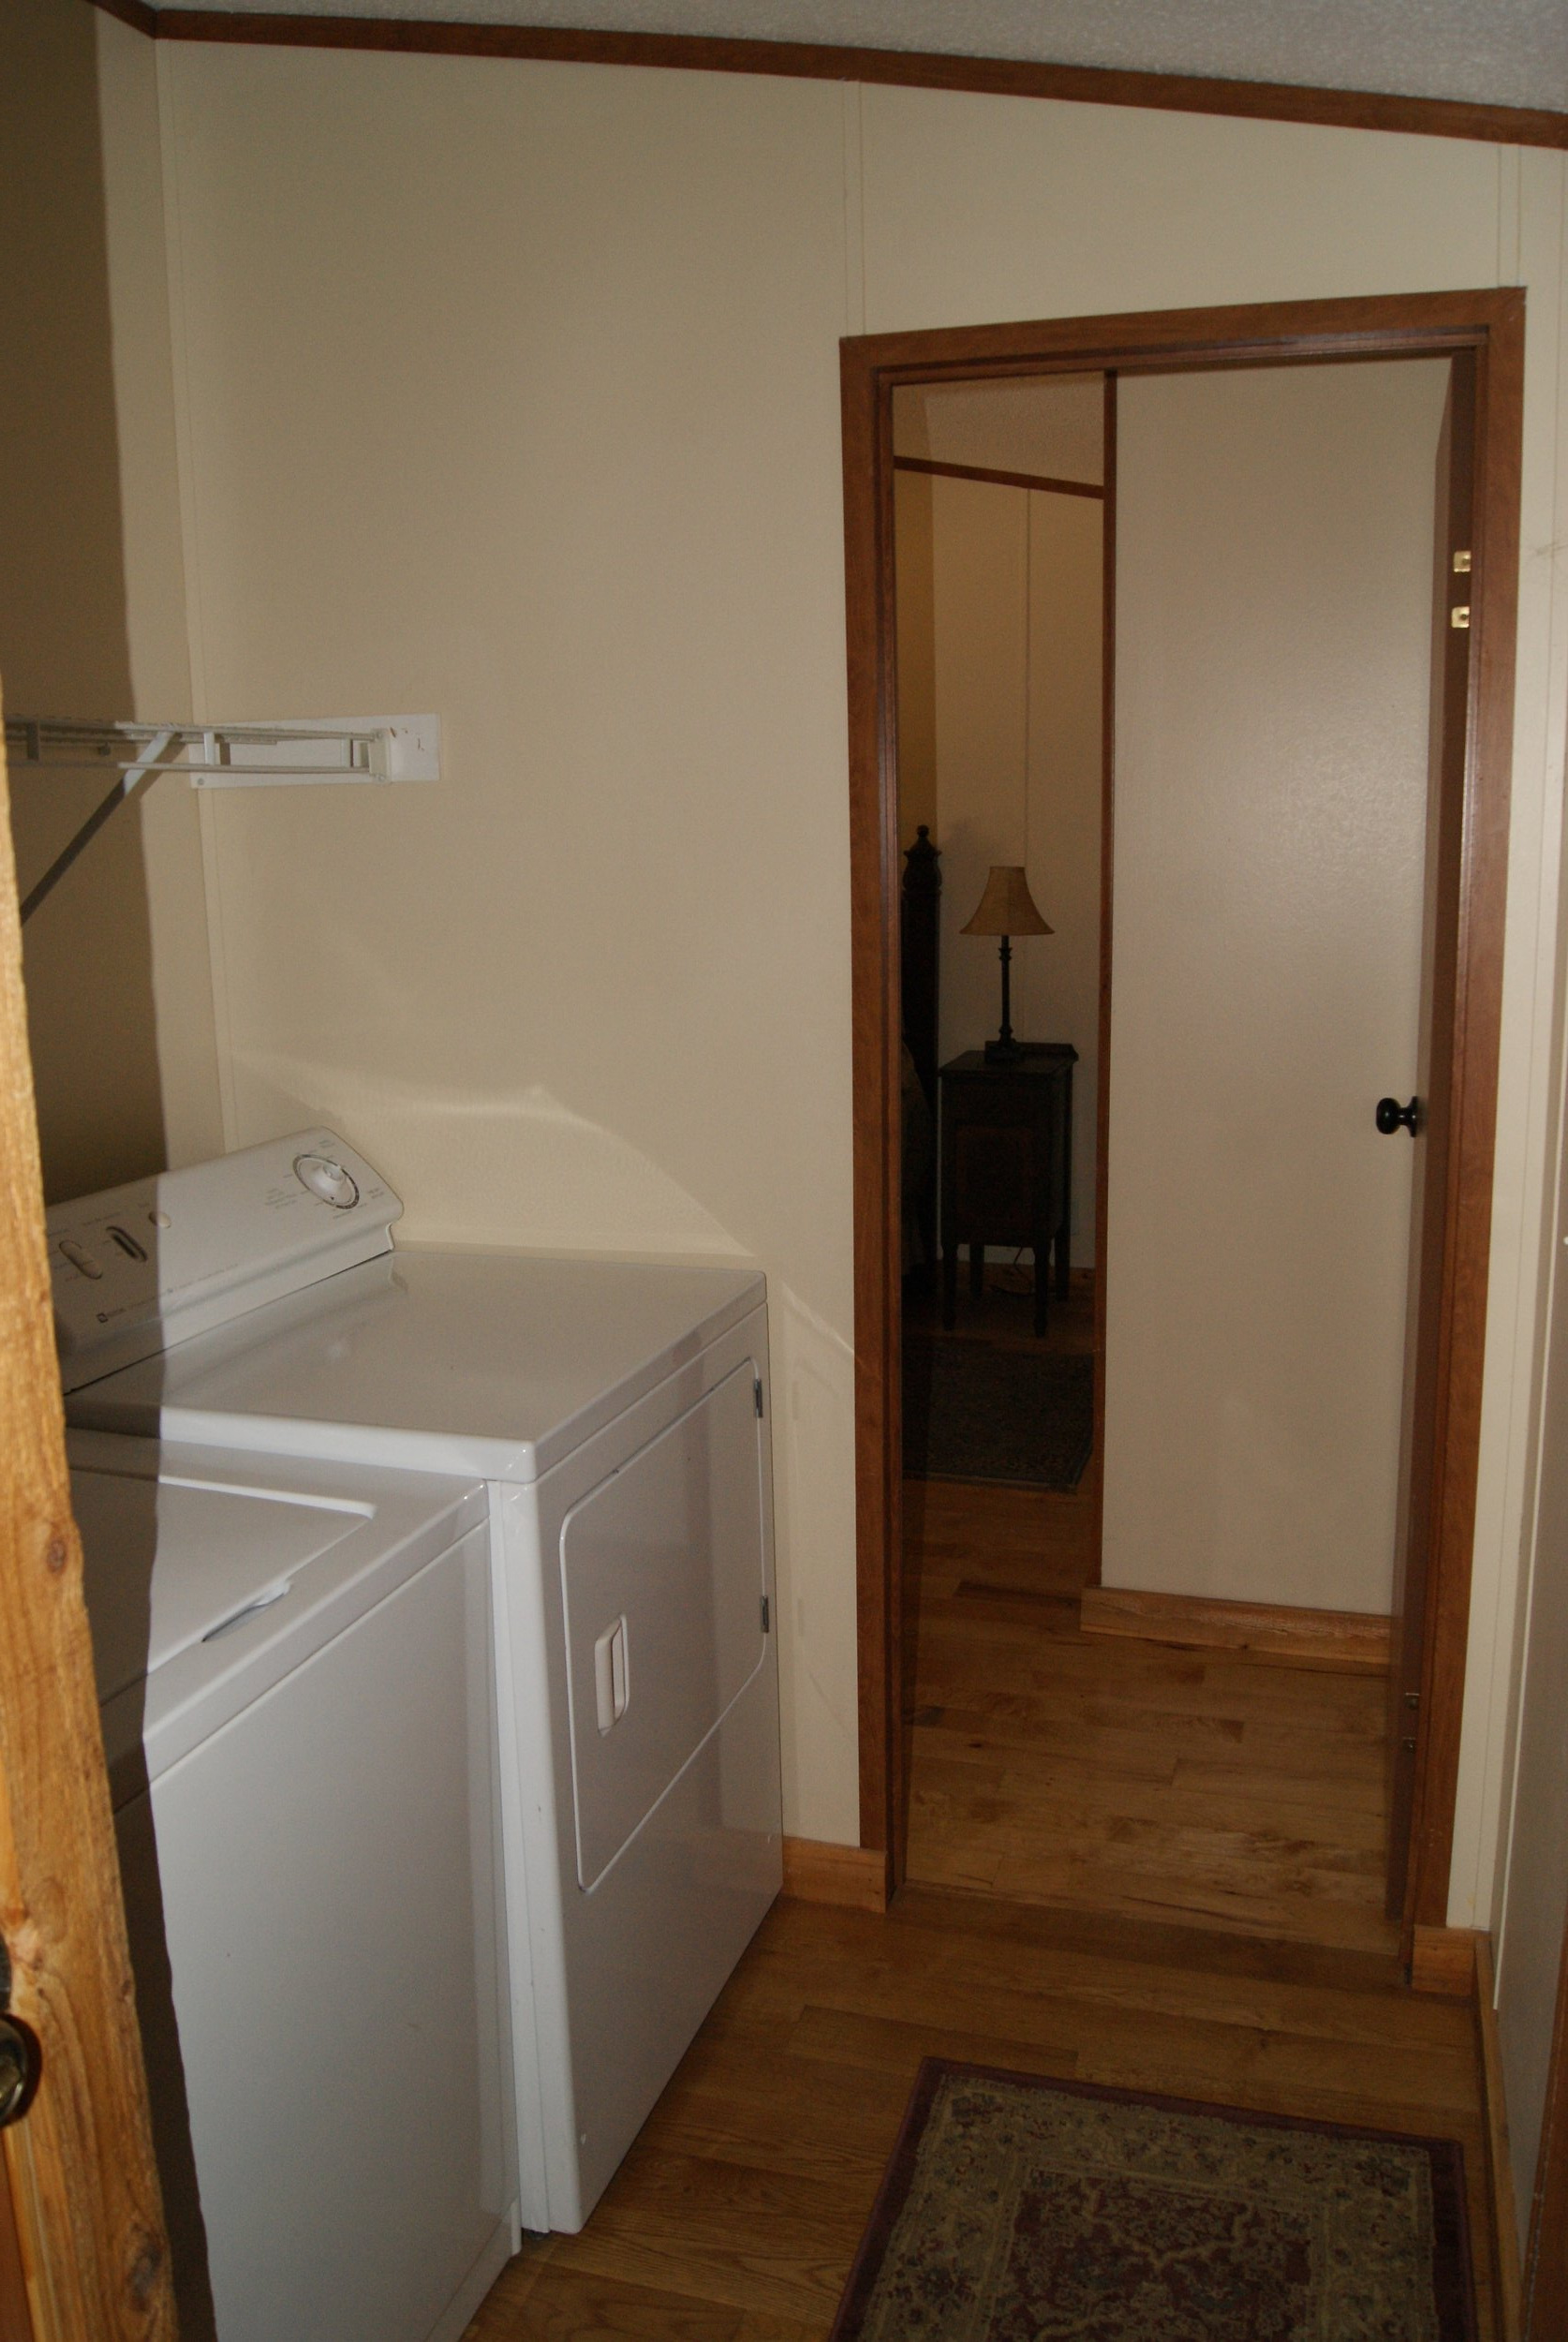 The Cabin: Tallgrass Suite laundry and bedroom entry